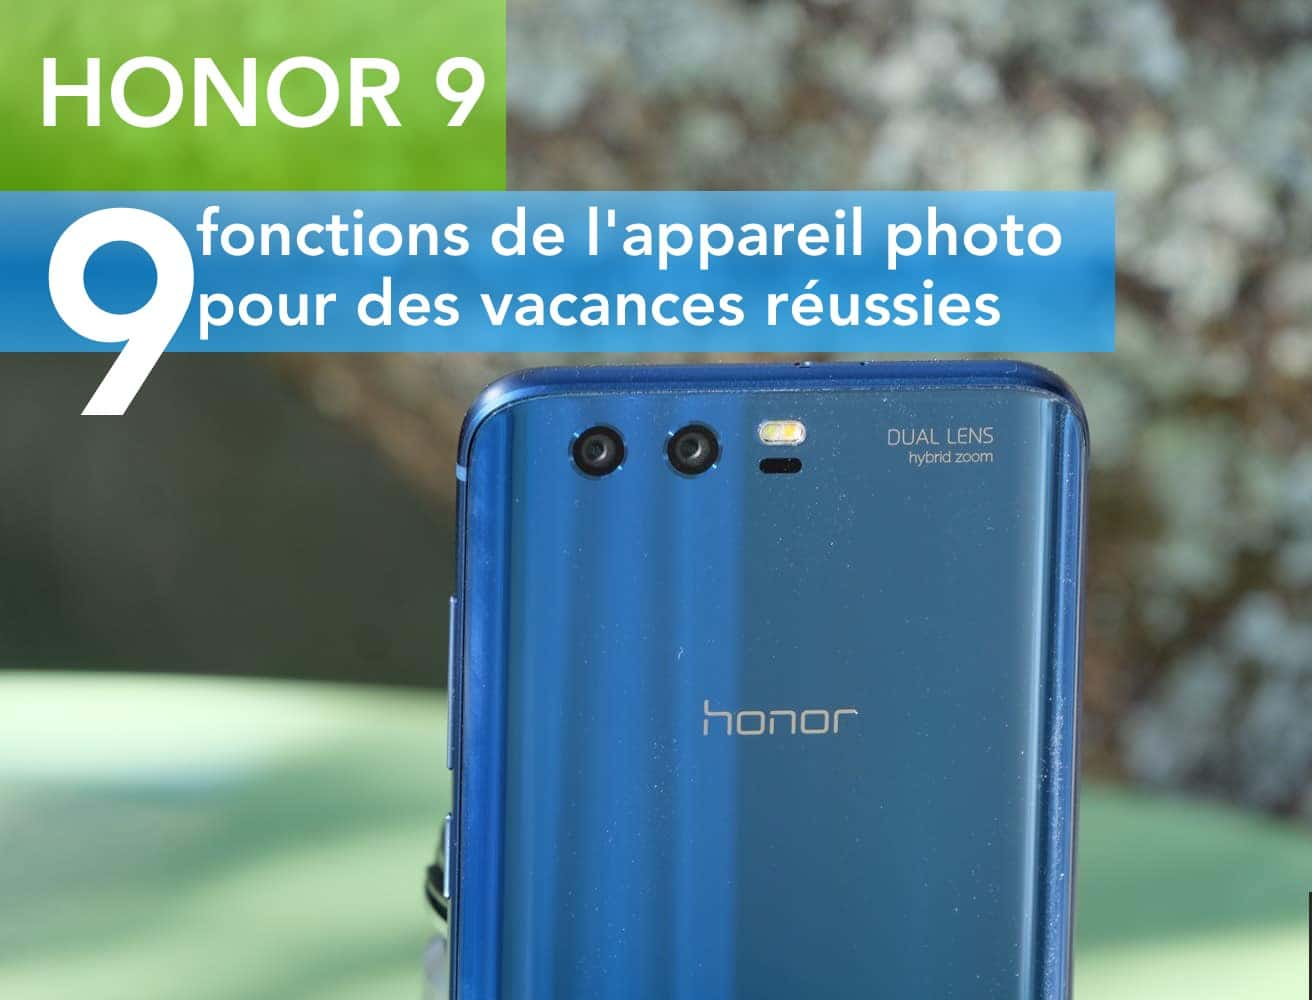 honor 9 appareil photo vacances